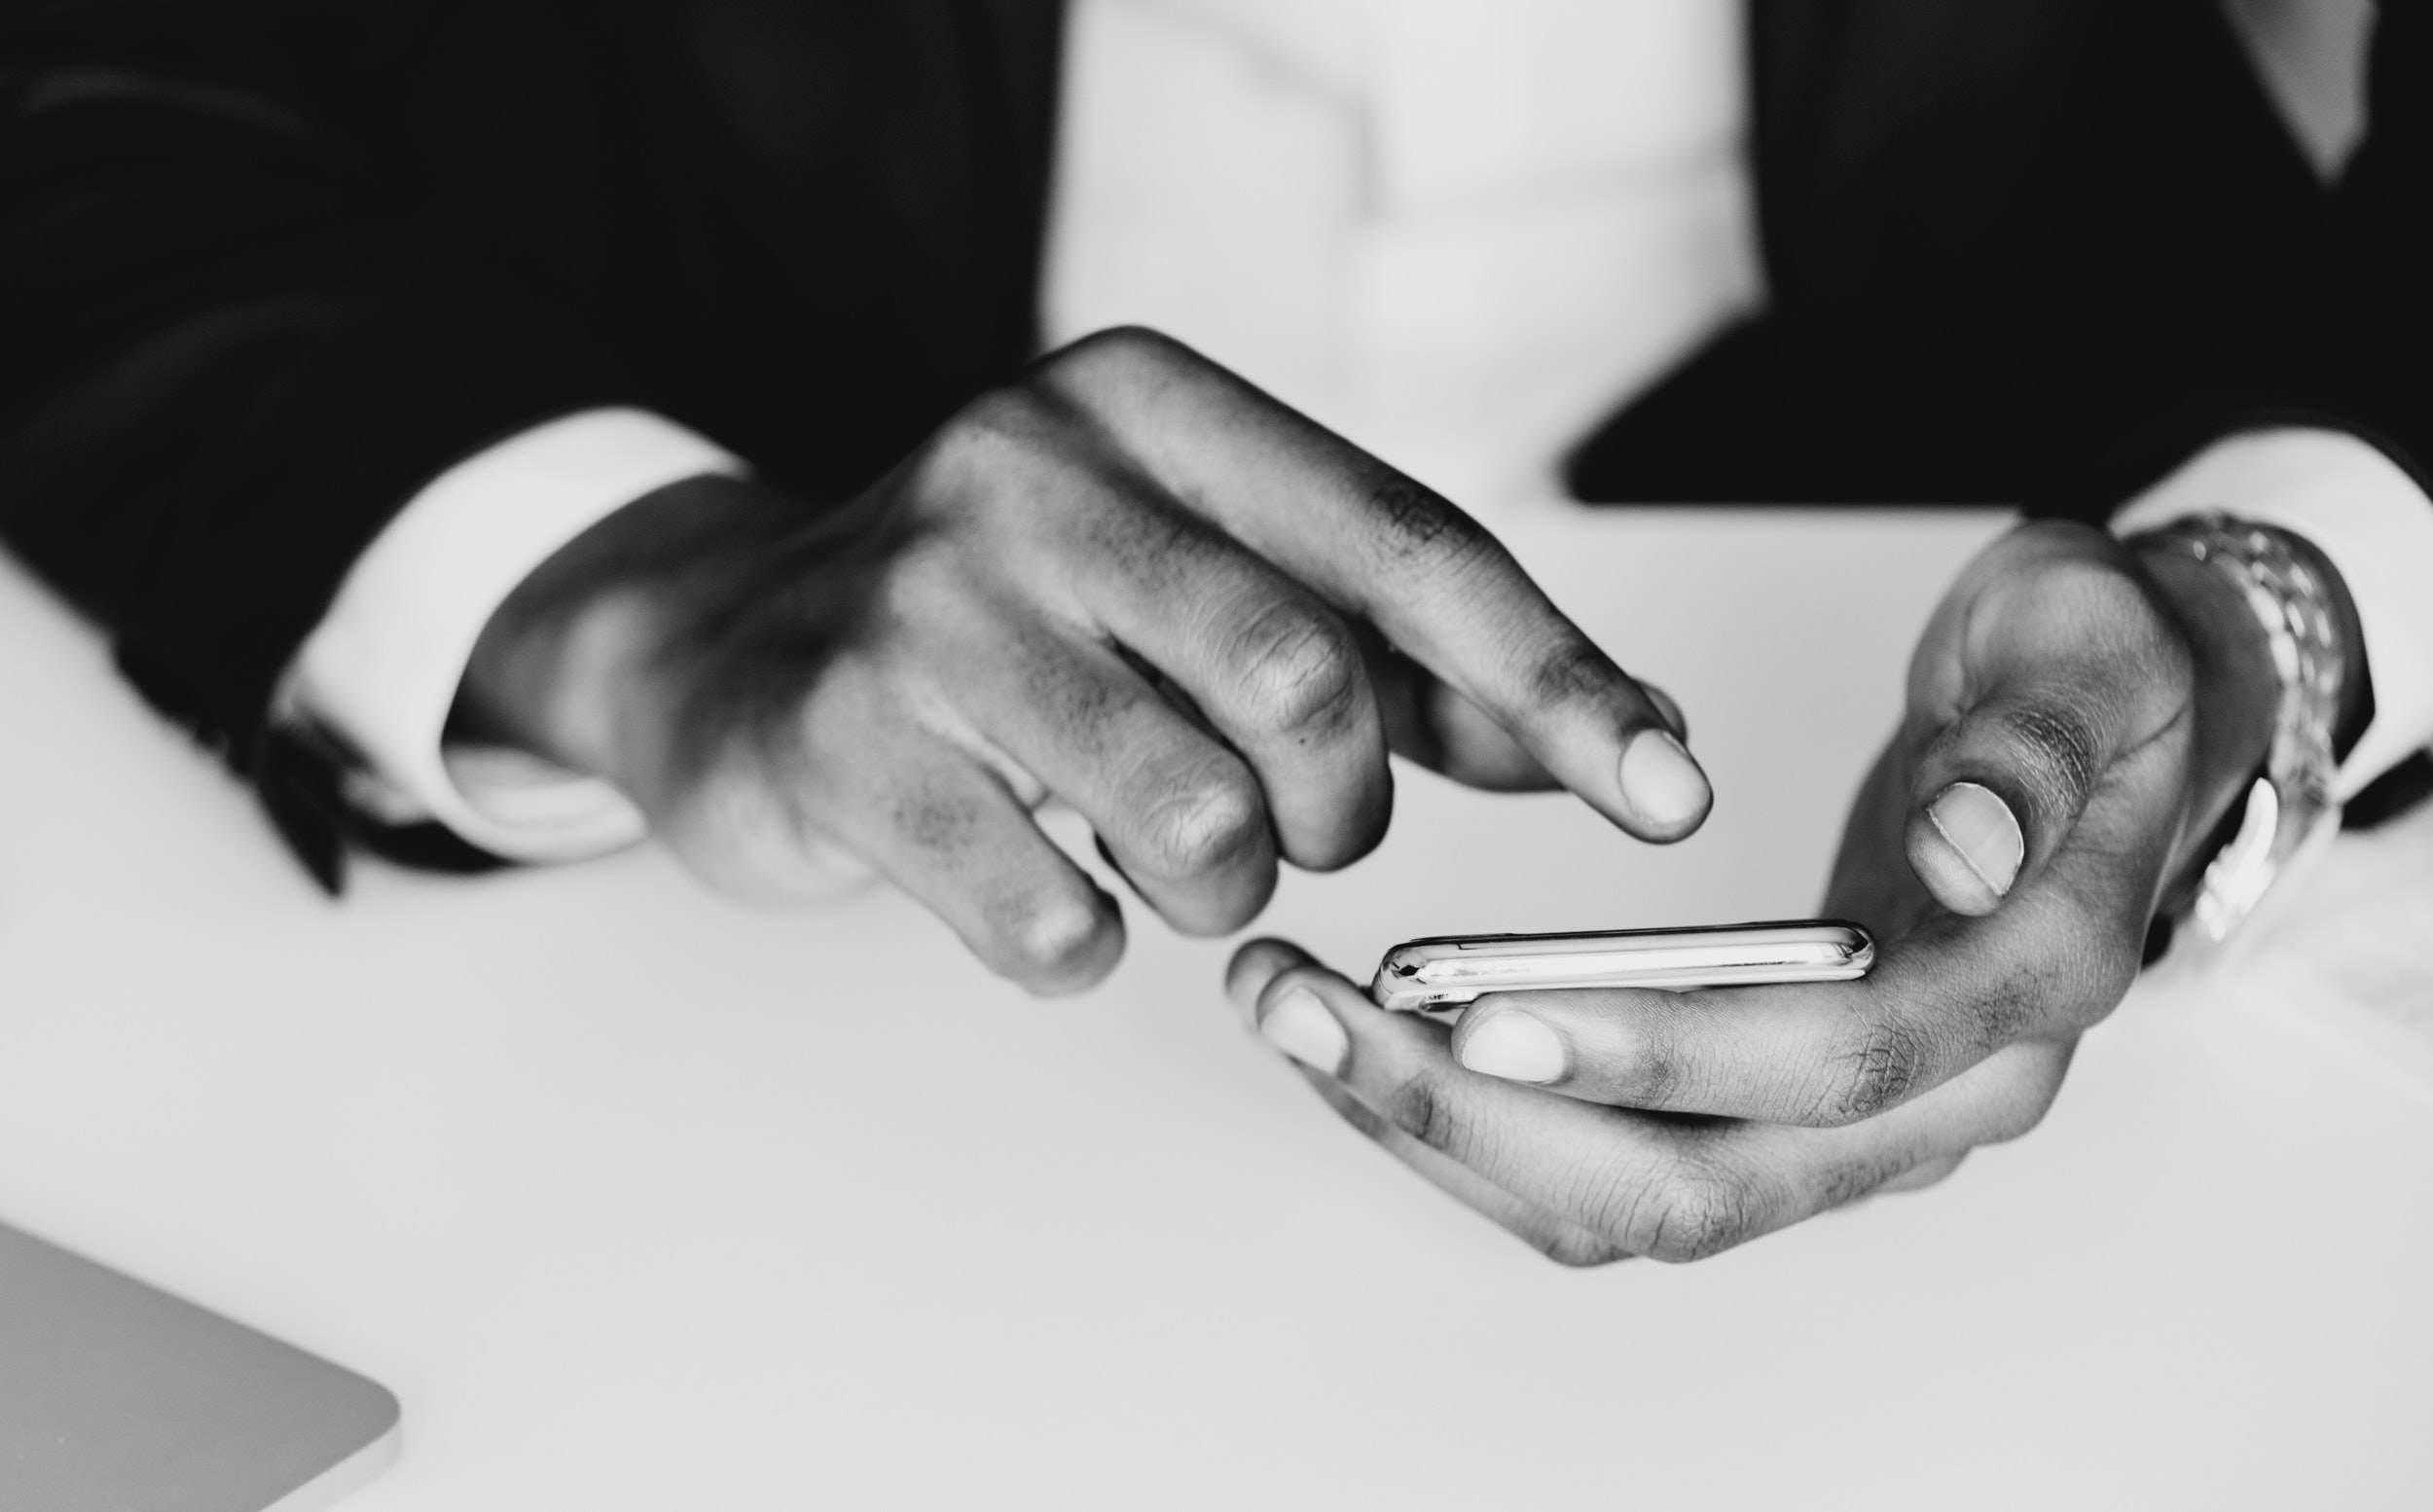 Monochrome photography of a person using mobile phone